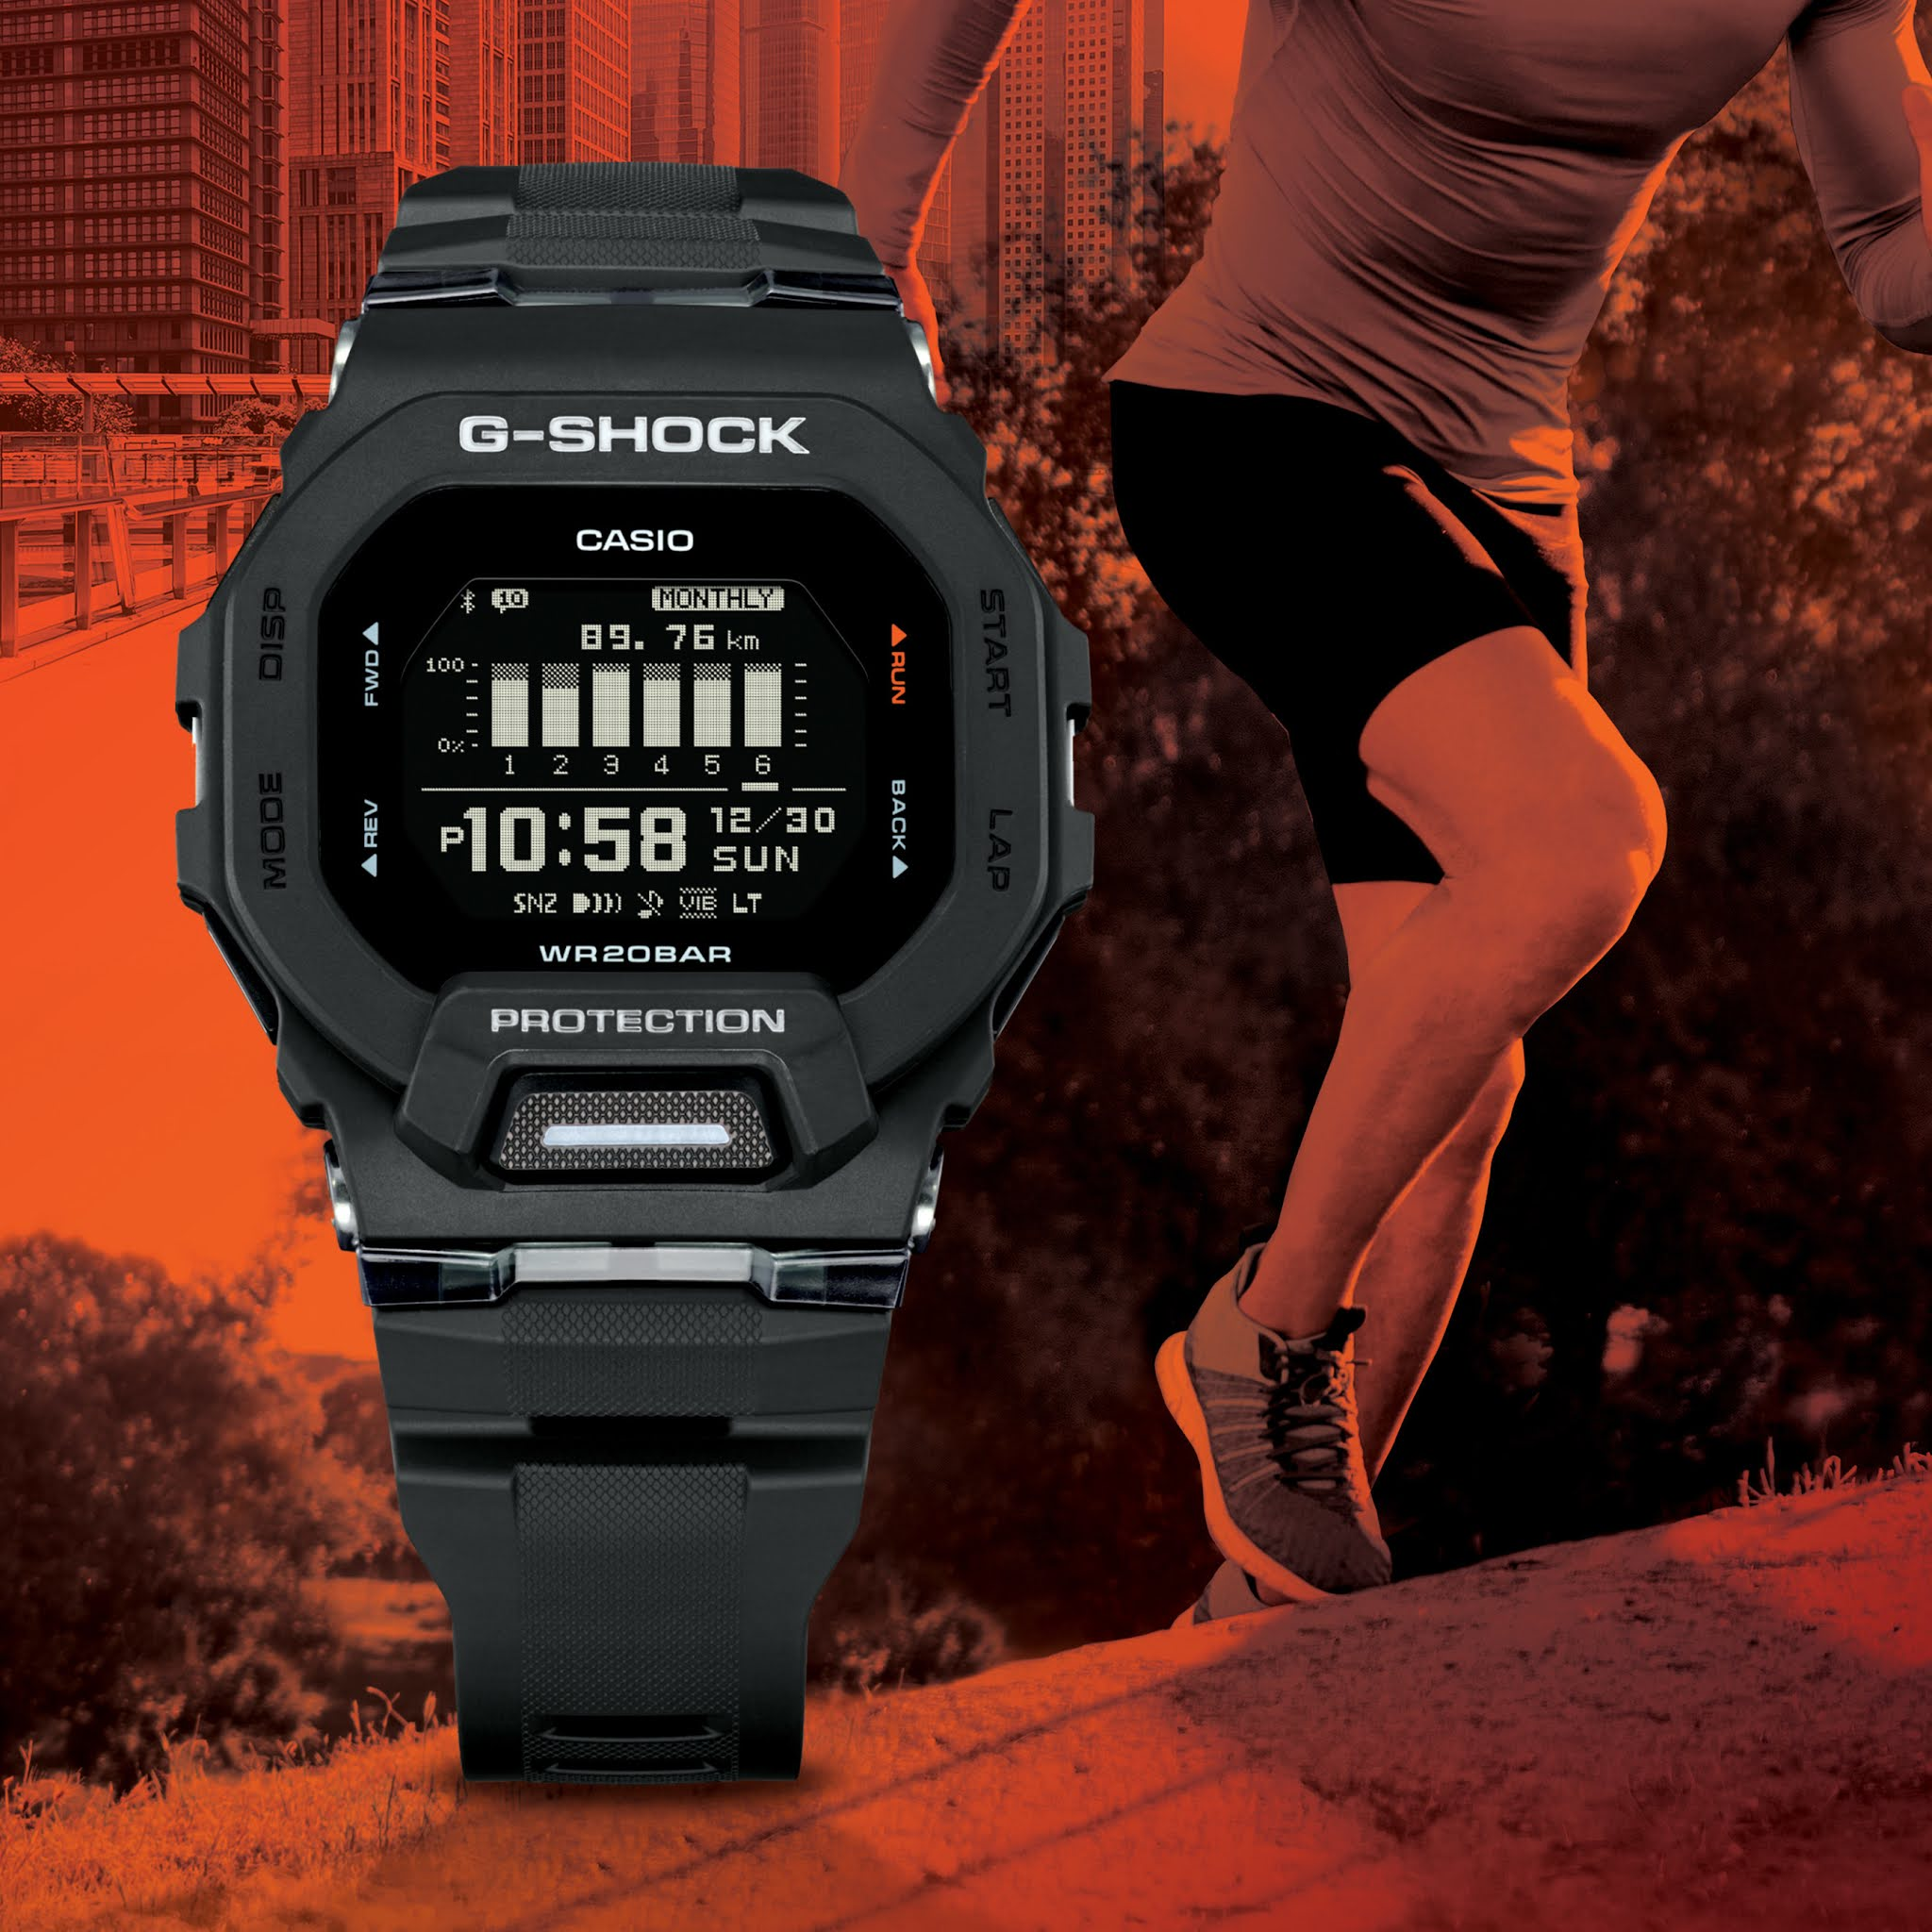 G-SHOCK Expands its G-SHOCK MOVE Lineup with Innovative GBD200 Models Featuring Origin Square Case Design